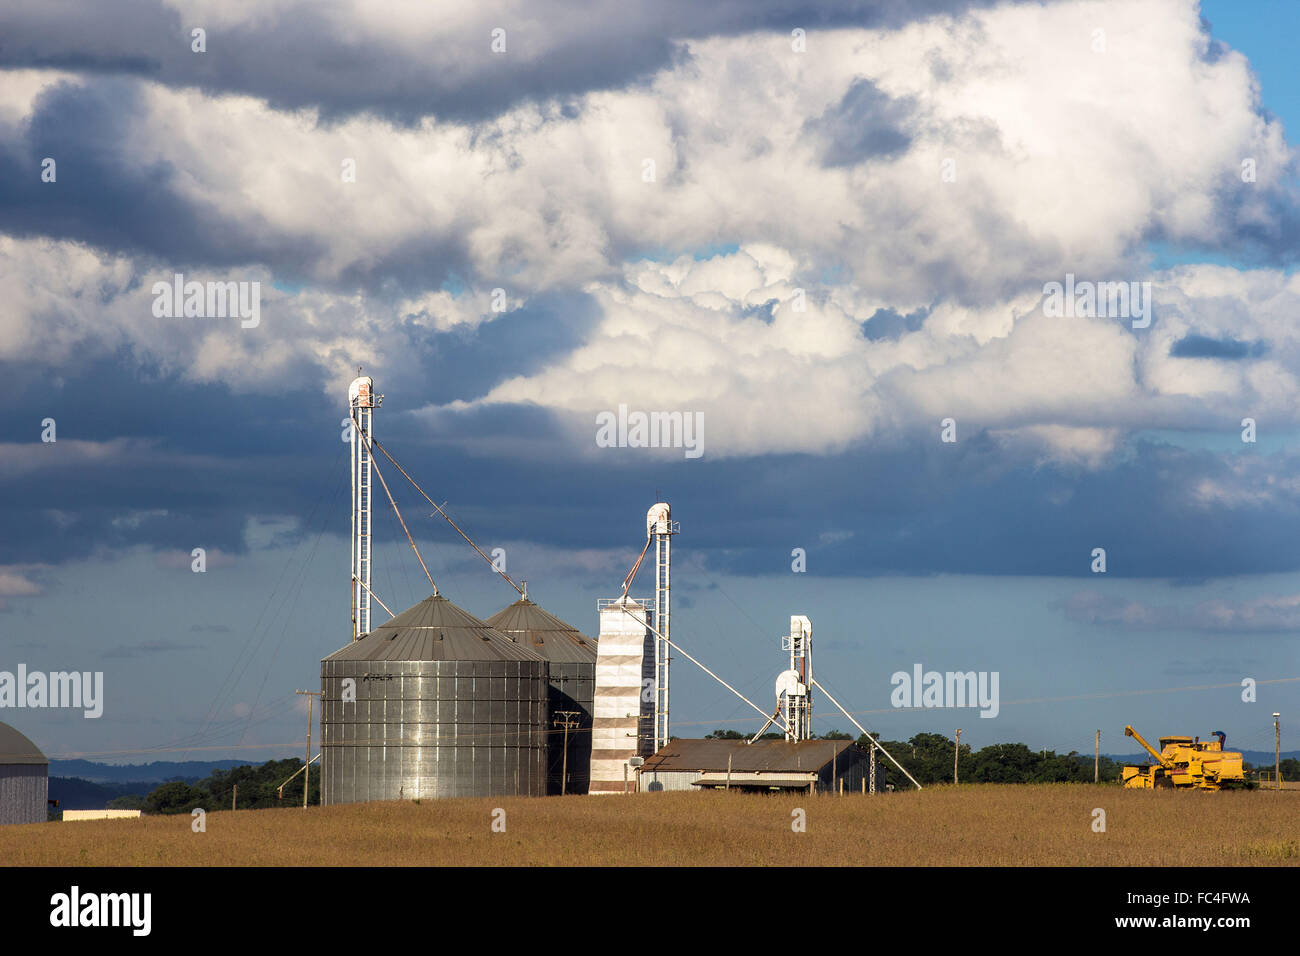 Combine harvesting soybeans next to the silo for storing grain Stock Photo